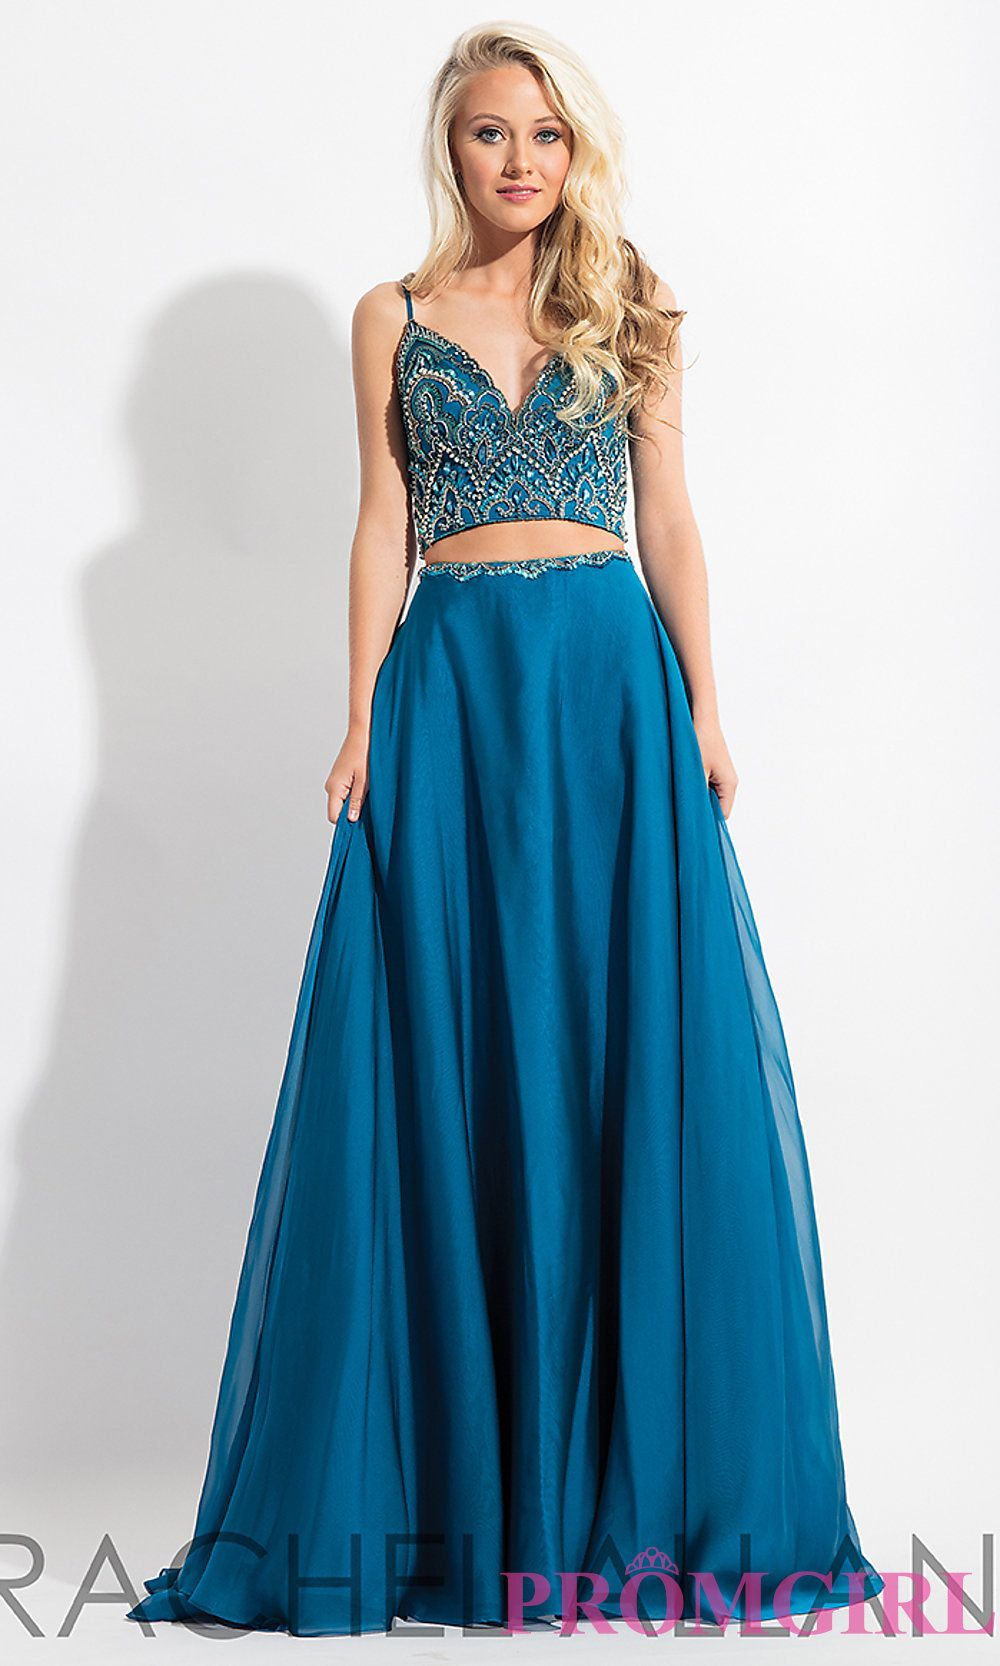 I like style ptra from promgirl do you like prom